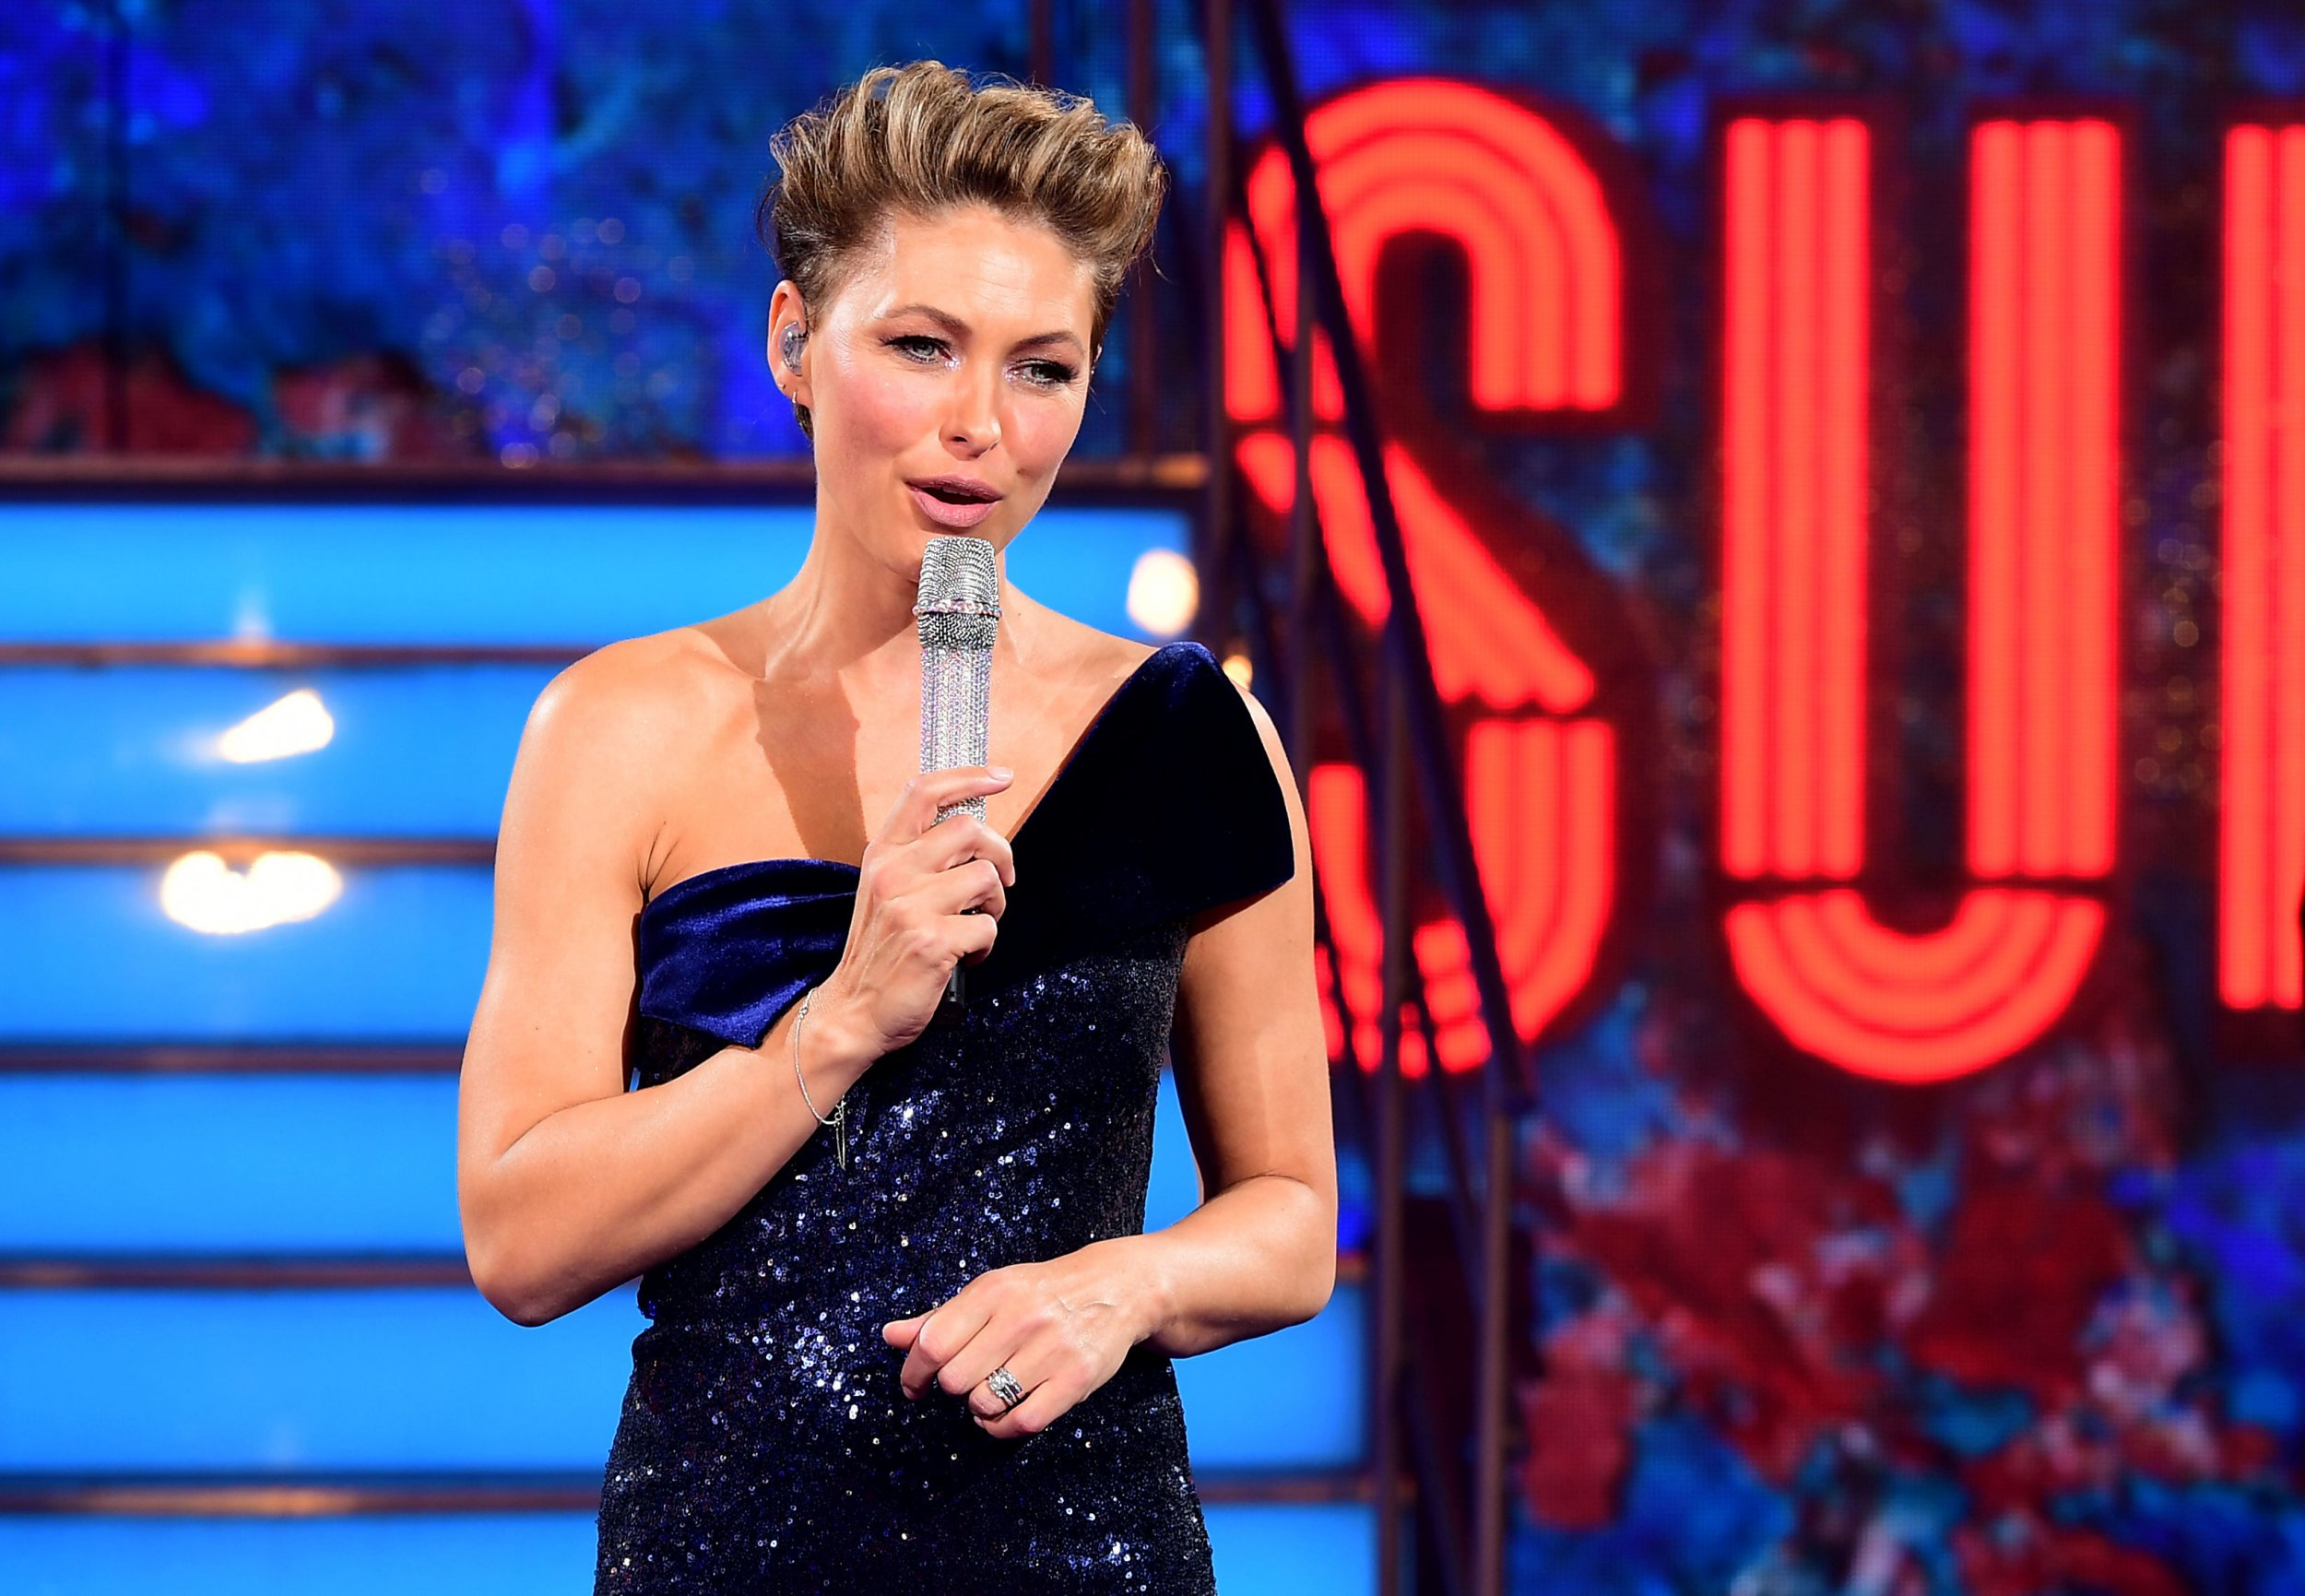 Presenter Emma Willis during the live final of Celebrity Big Brother at Elstree Studios, Hertfordshire. PRESS ASSOCIATION Photo. Picture date: Monday September 10, 2018. See PA story SHOWBIZ CBB. Photo credit should read: Ian West/PA Wire